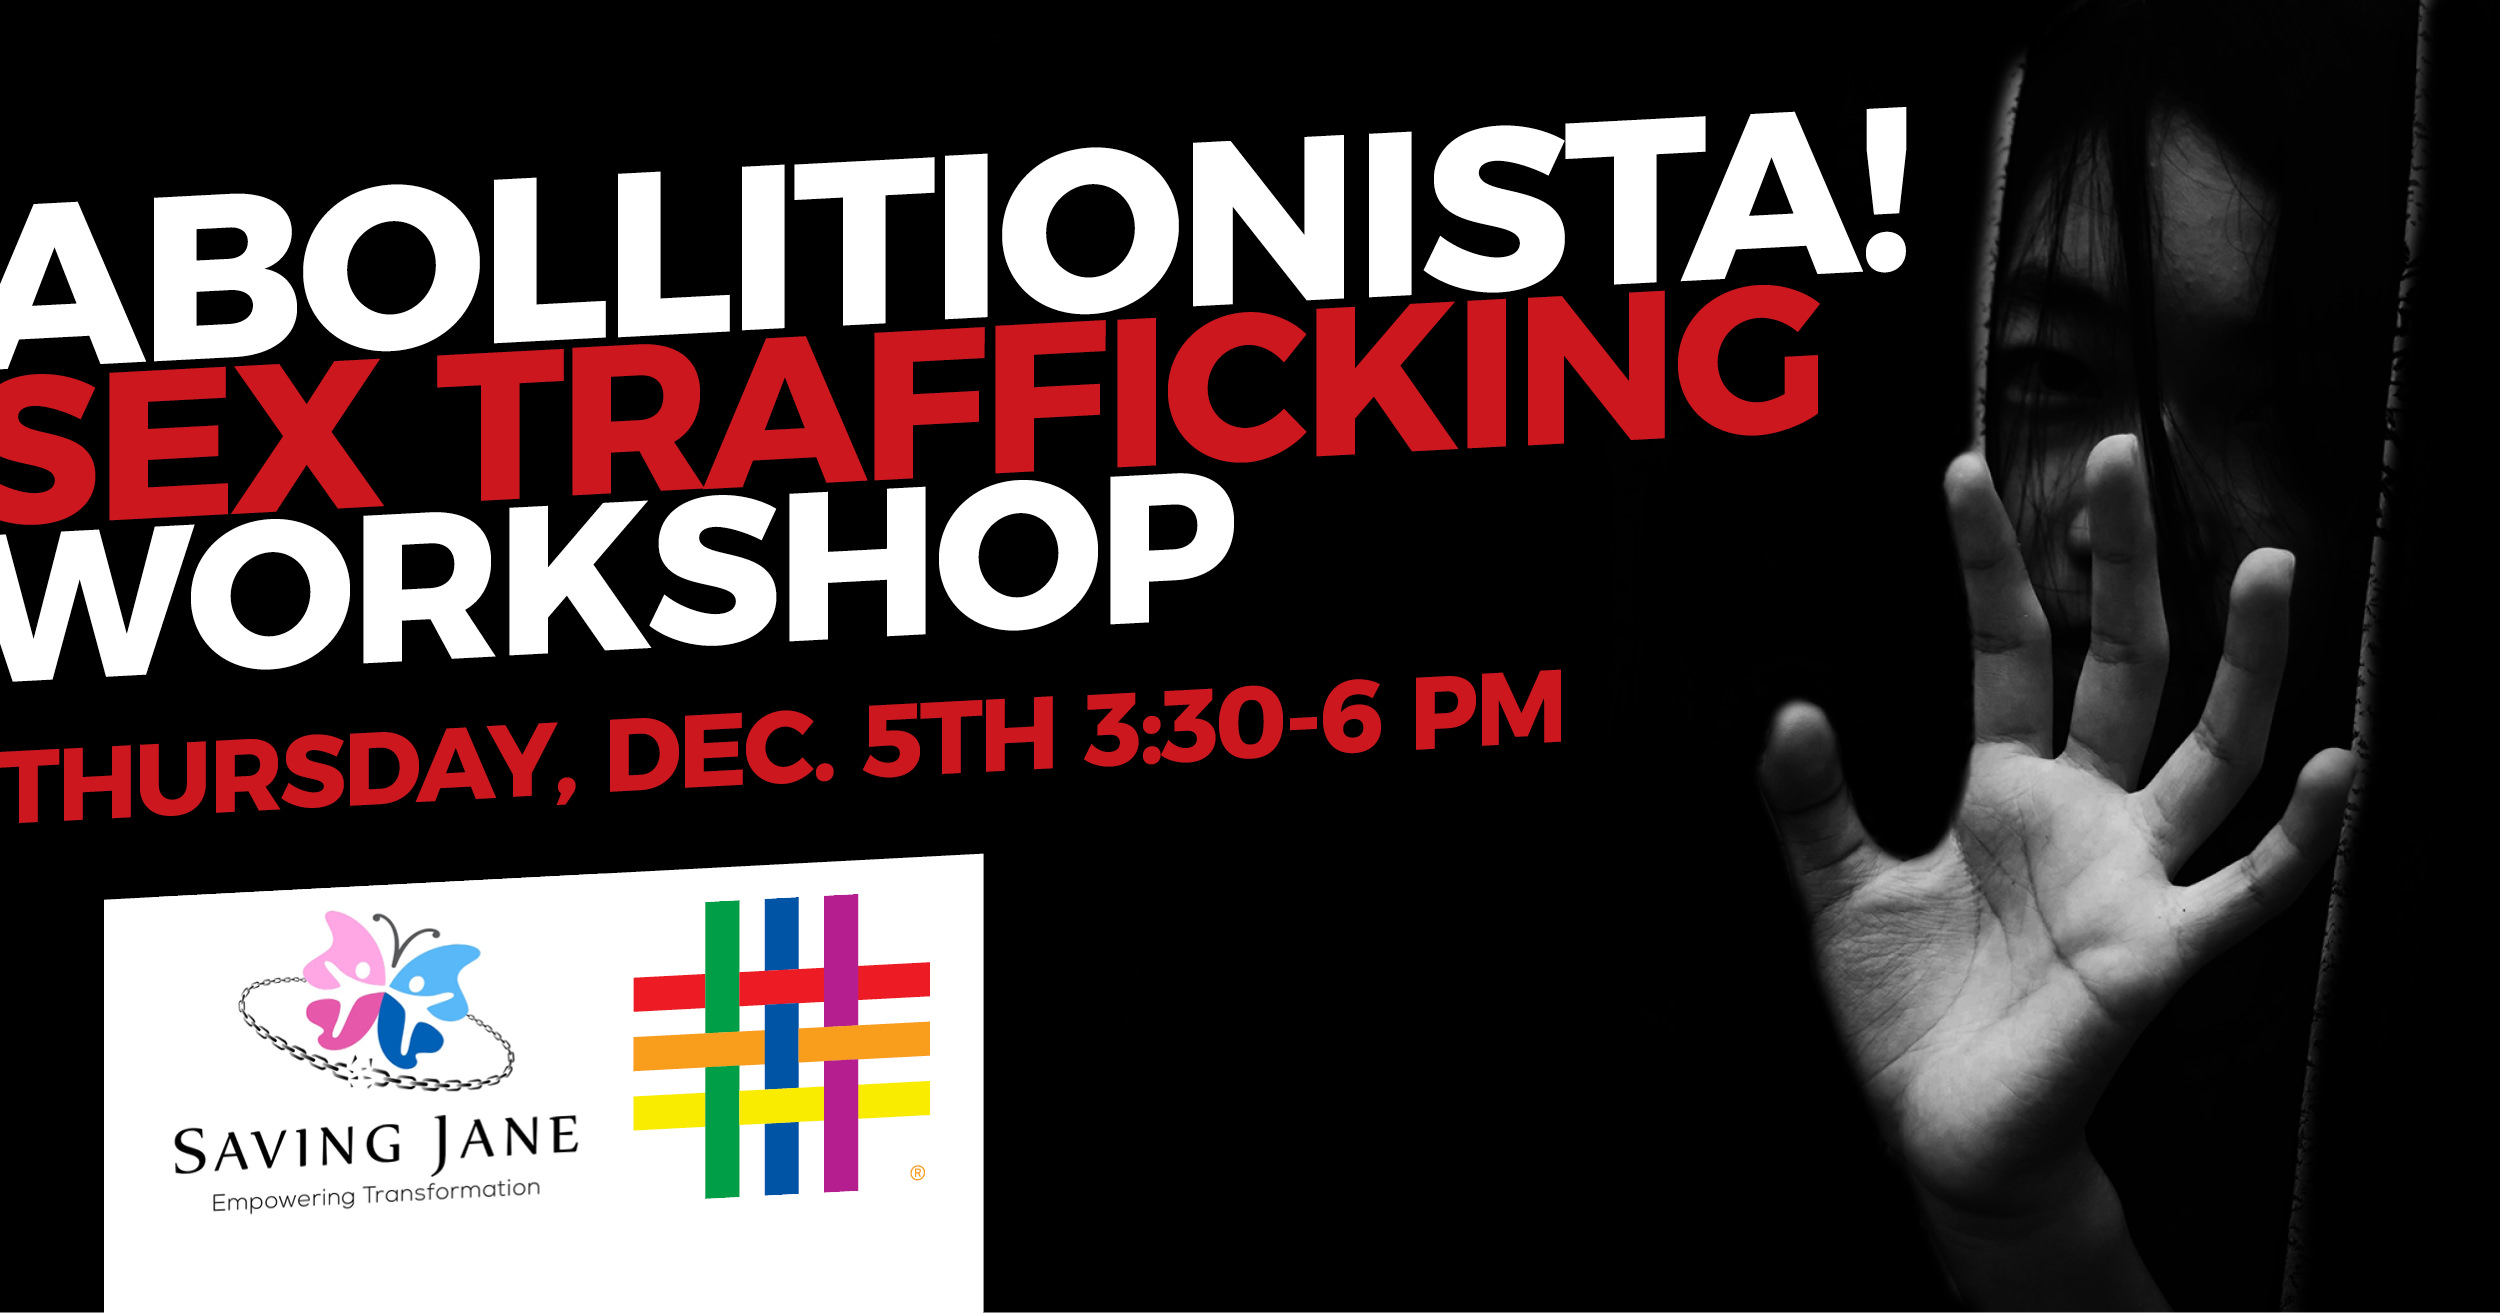 Abollitionista! Sex Trafficking Workshop at Brooklyn Community Pride Center